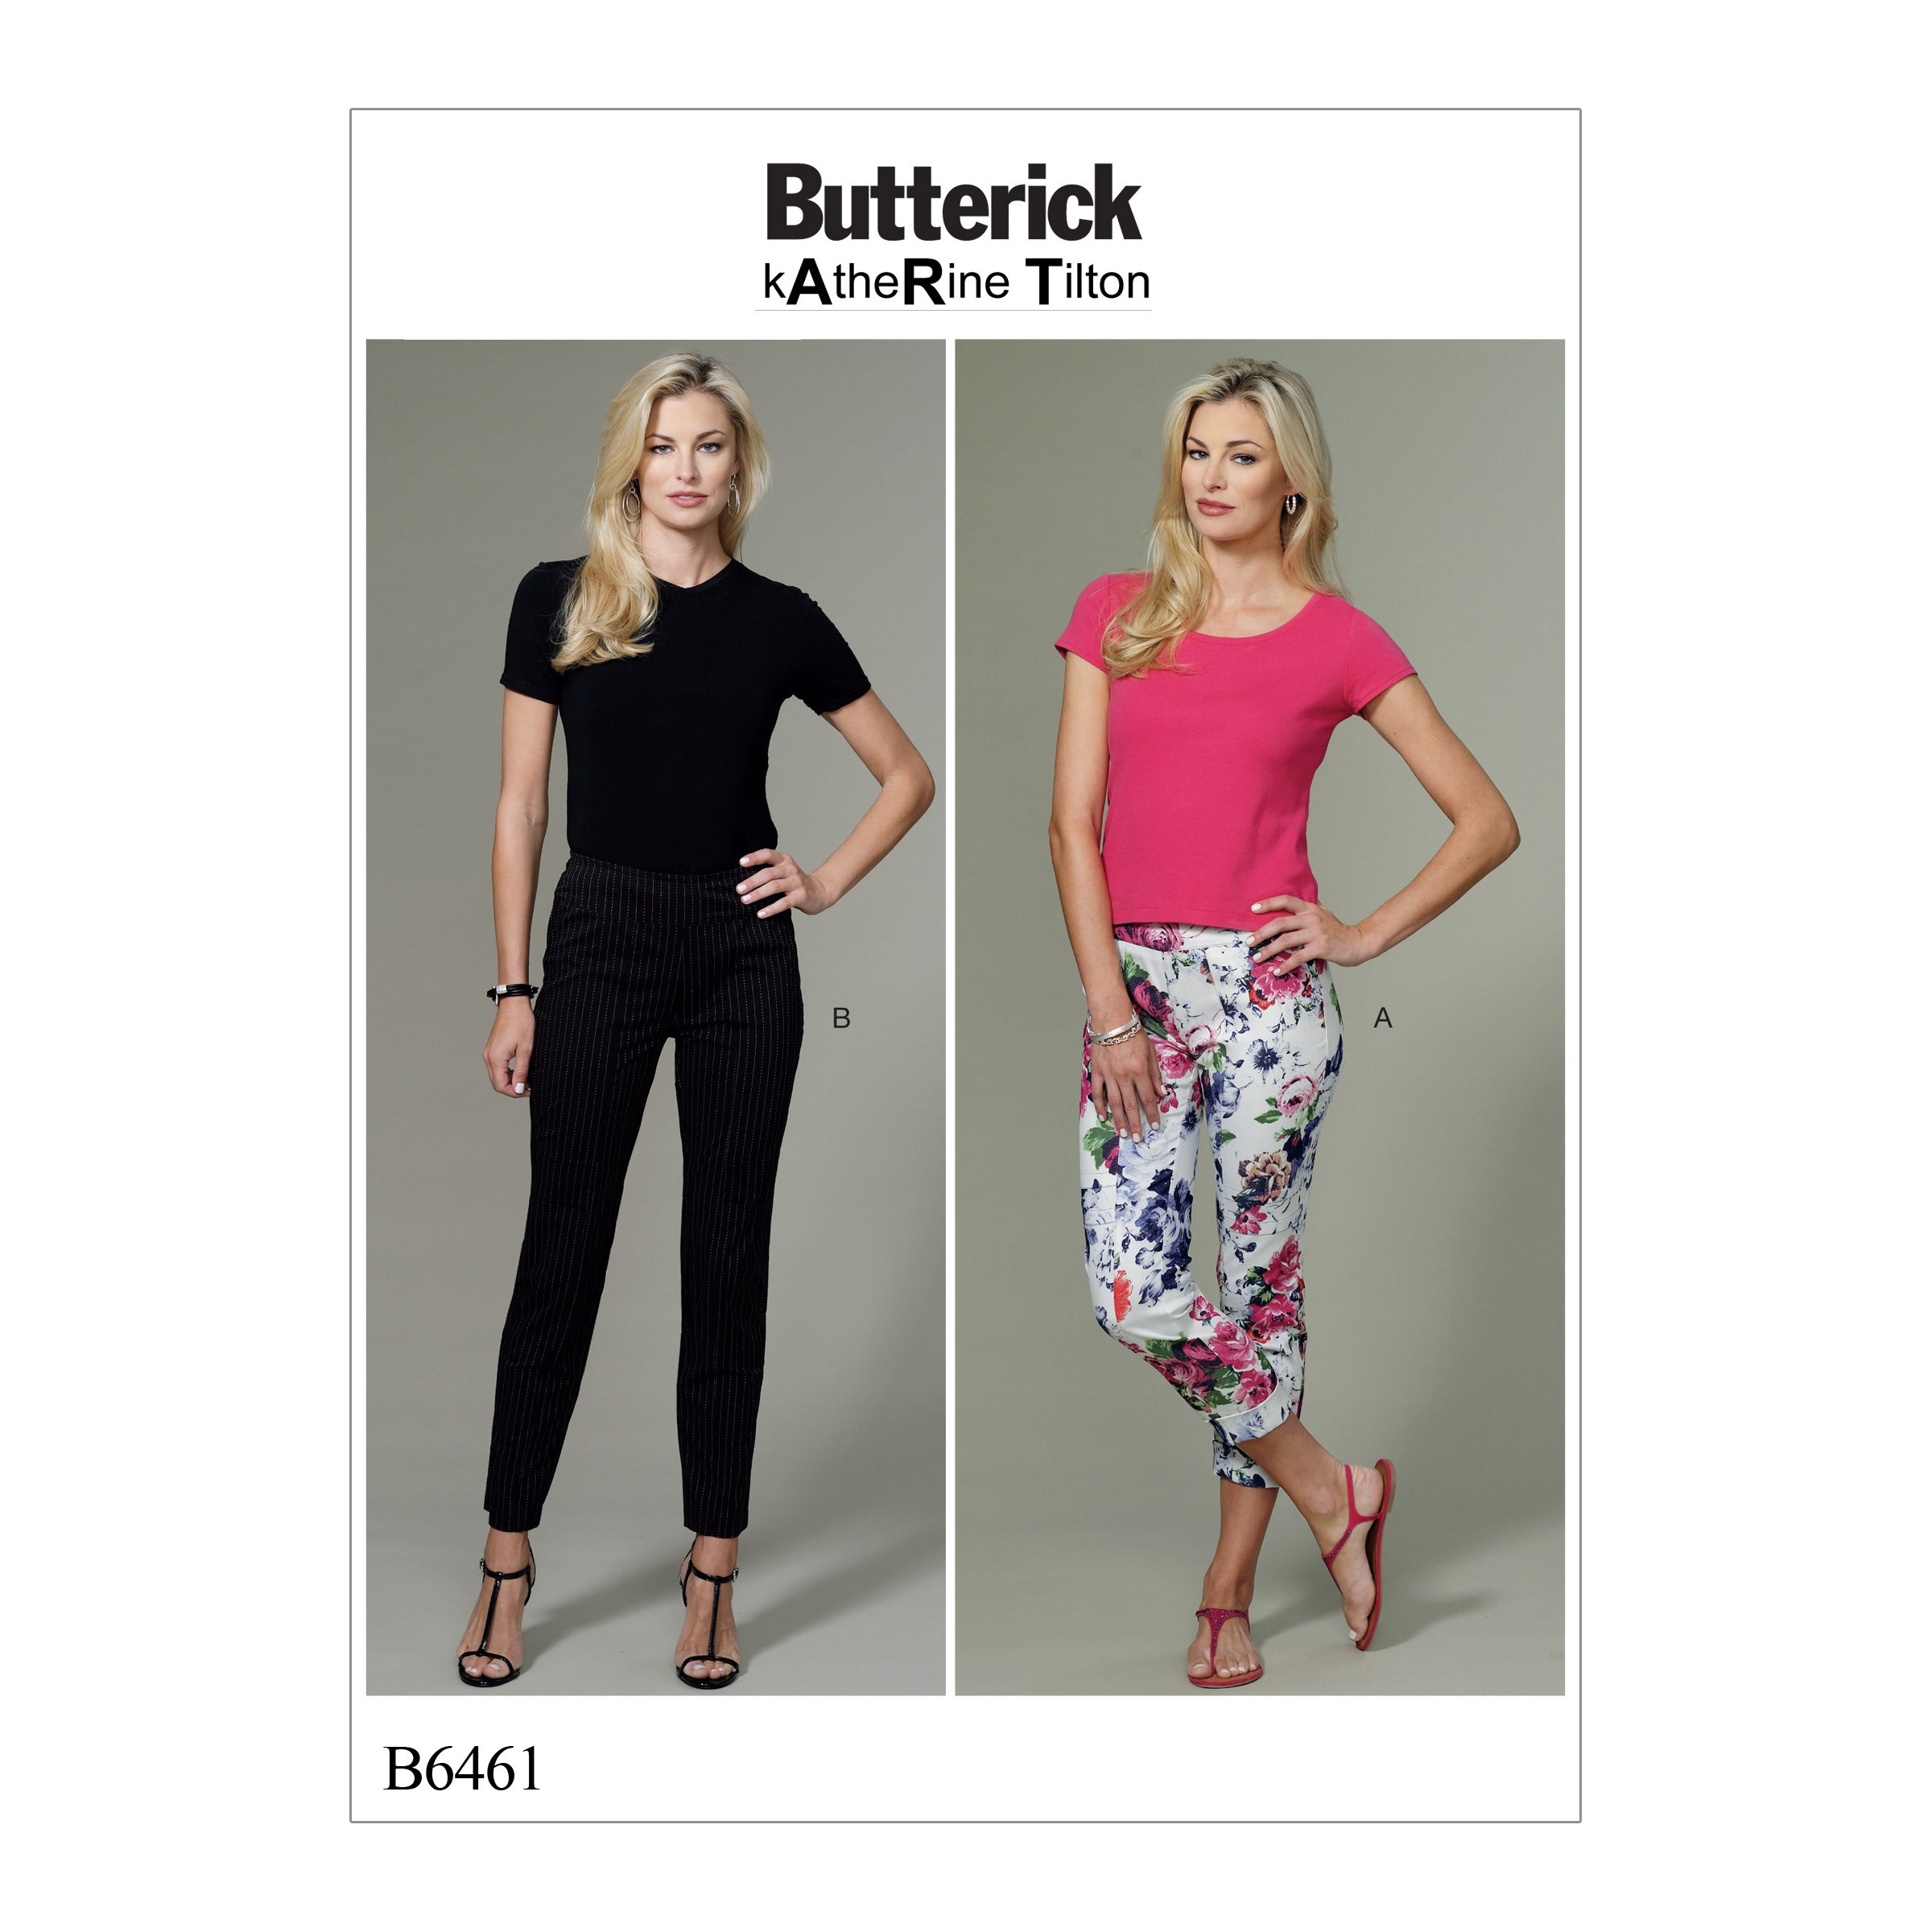 Butterick Sewing Pattern 6461 Misses' Seam-Detail Trousers